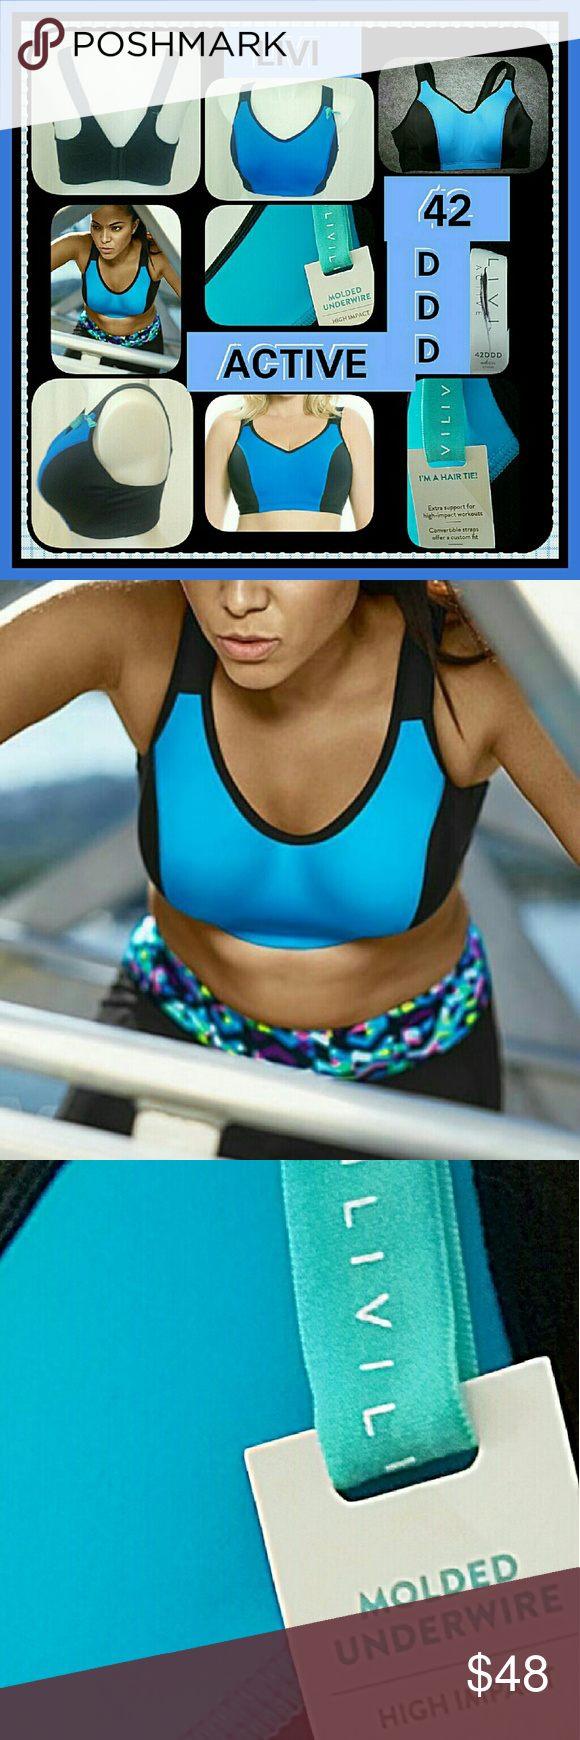 b9664c6ab3 🆕💙♥NWT LIVI WONDERFUL BLUE SPORTS BRA 42DDD🆕💙♥ 🆕💙♥THIS IS ...